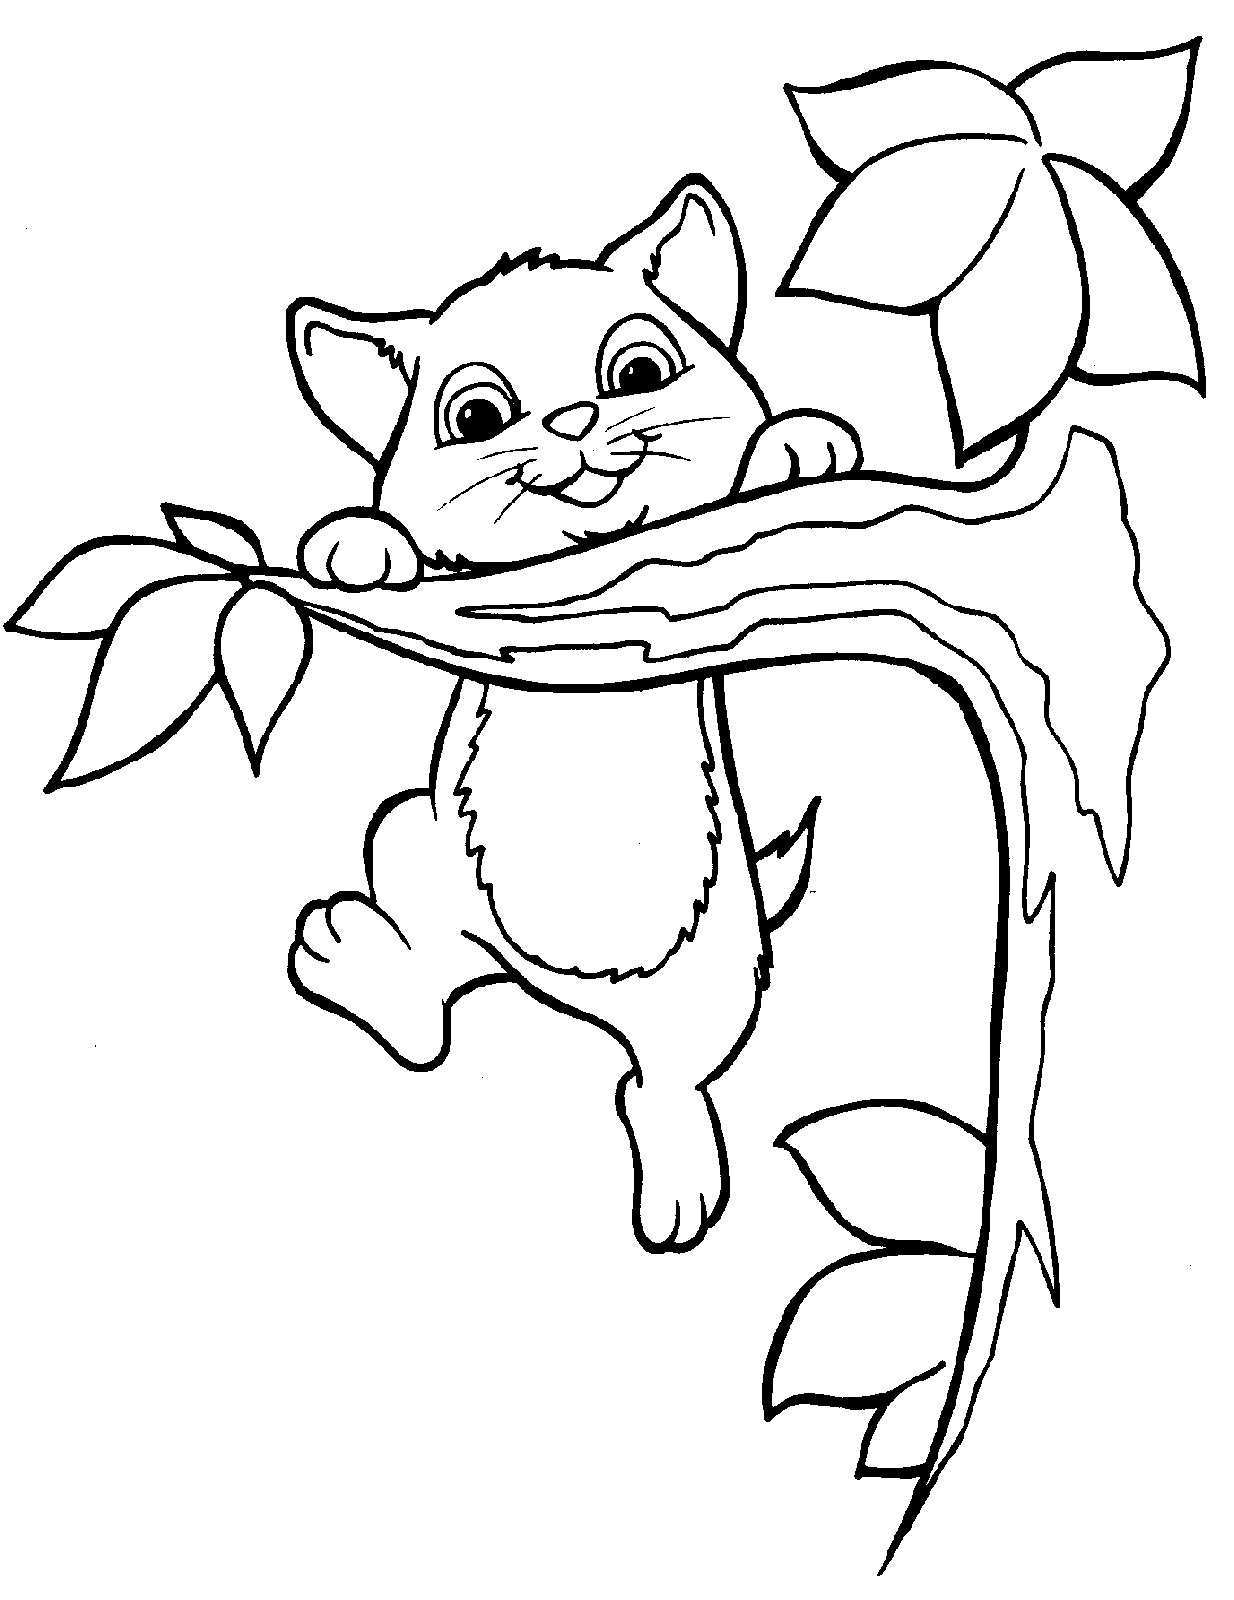 Printable Kitten Coloring Pages Tree